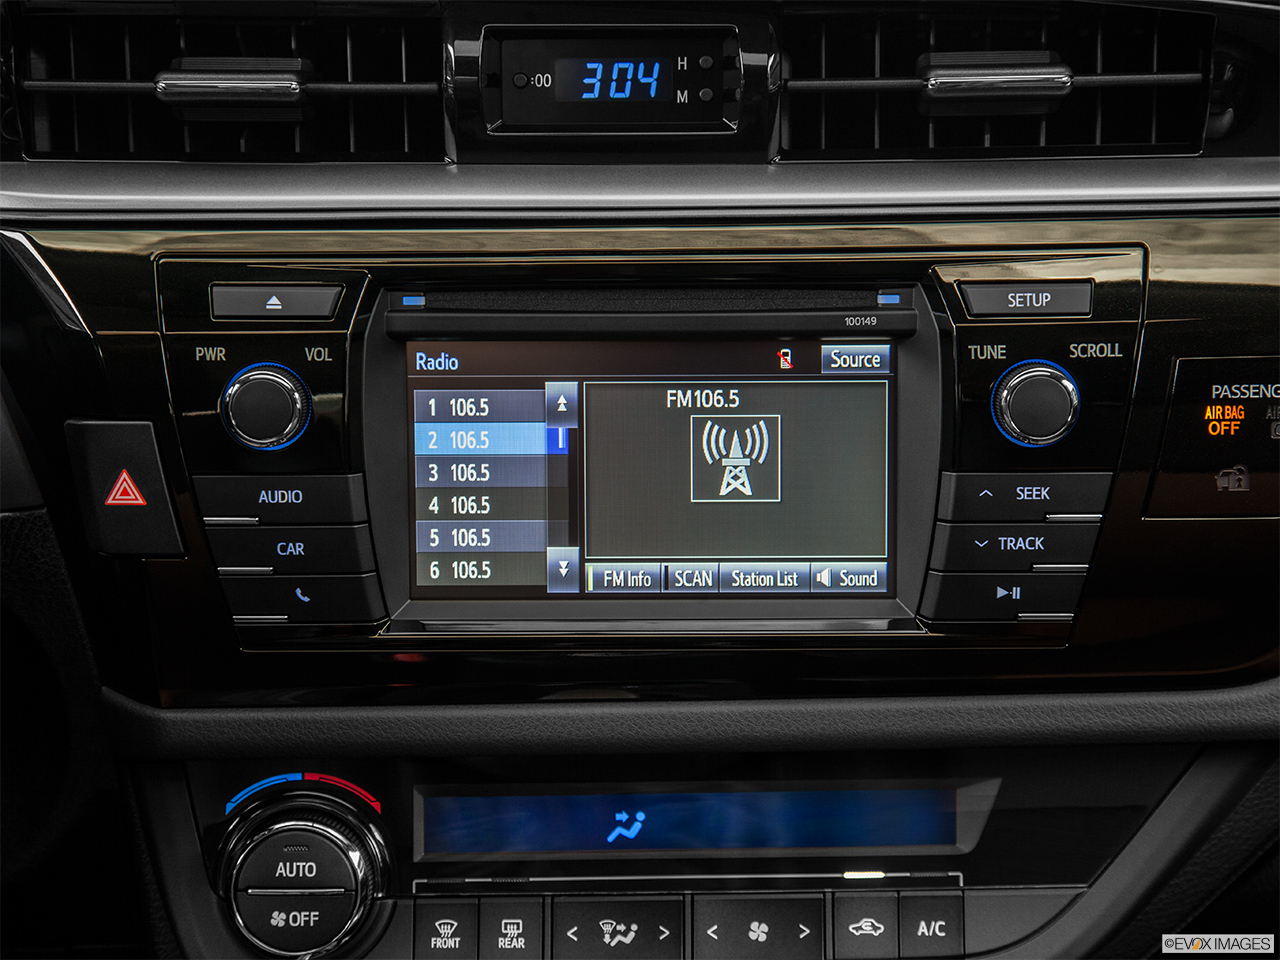 2014 Toyota Corolla Sedan Manual S Plus Closeup Of Radio